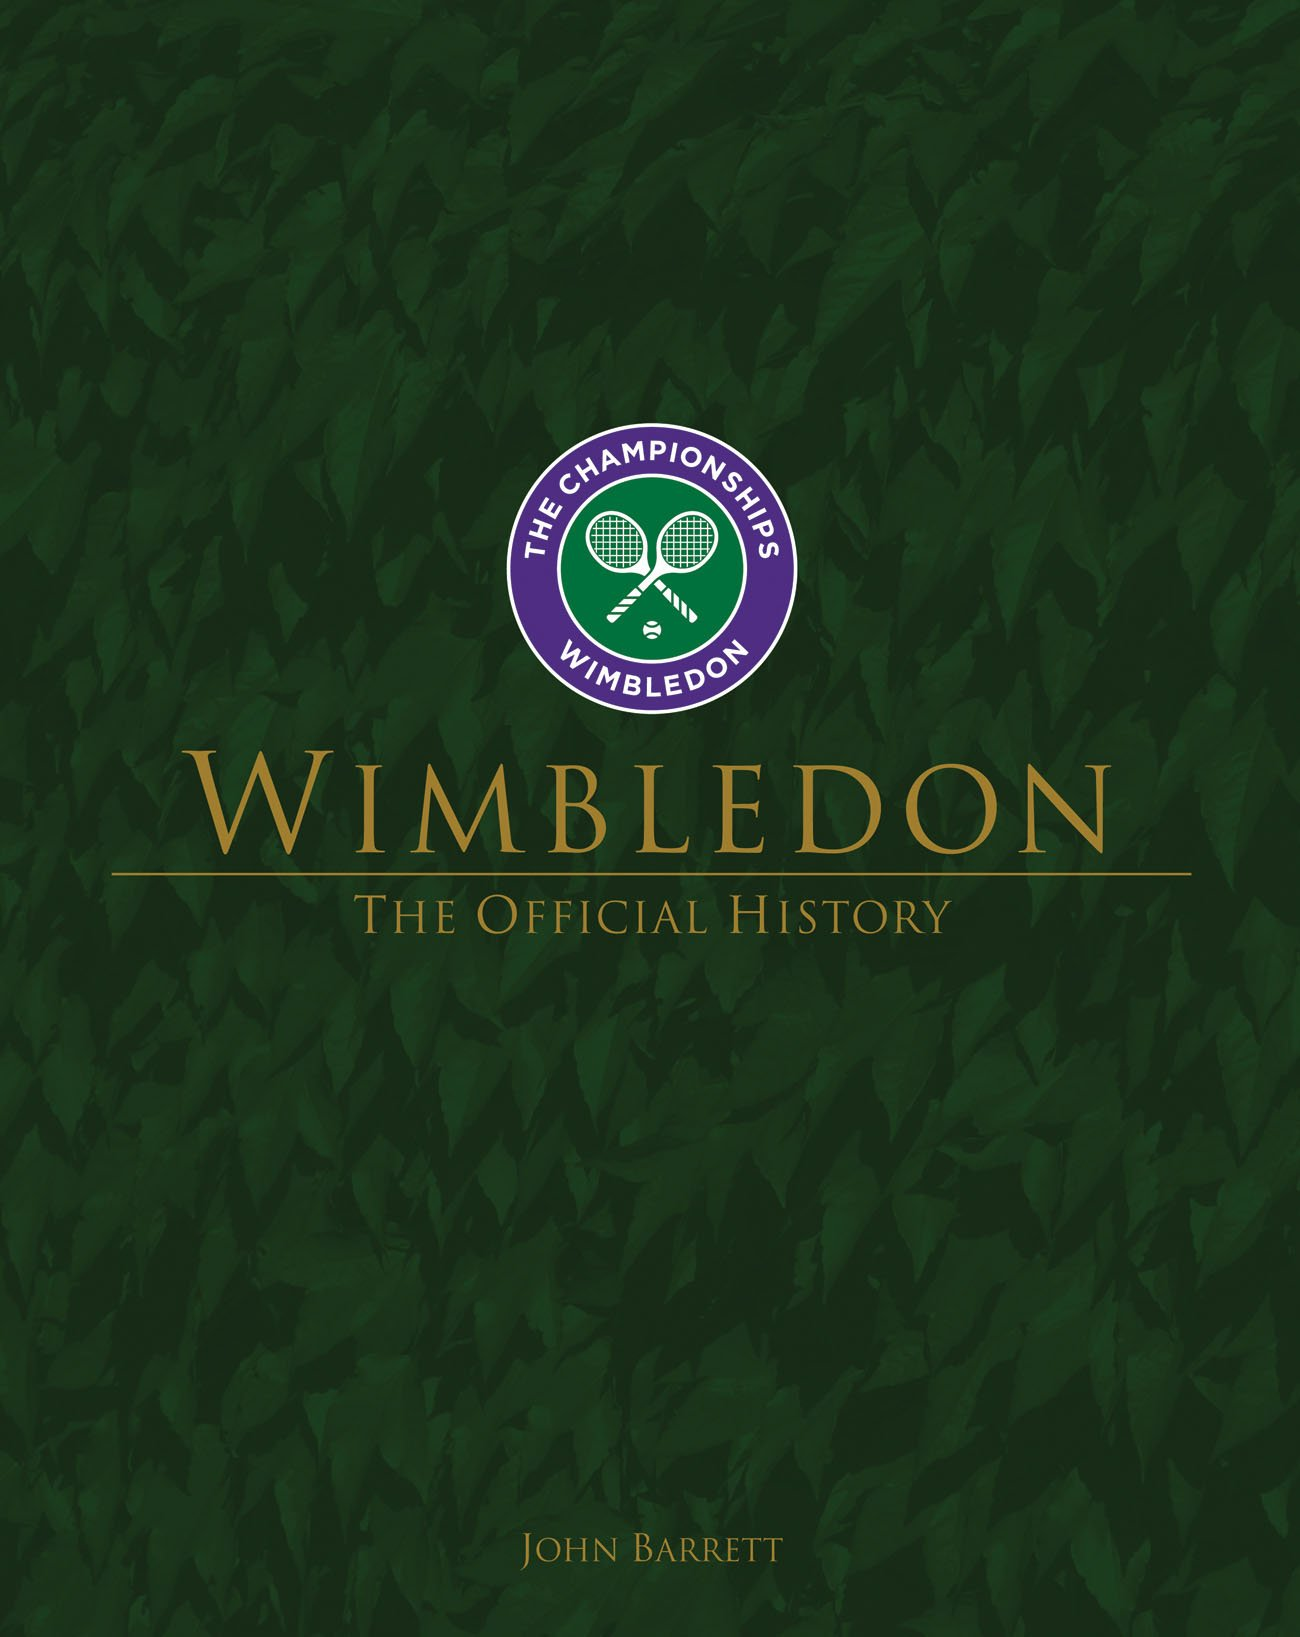 Wimbledon: The Official History by Vision Sports Publishing